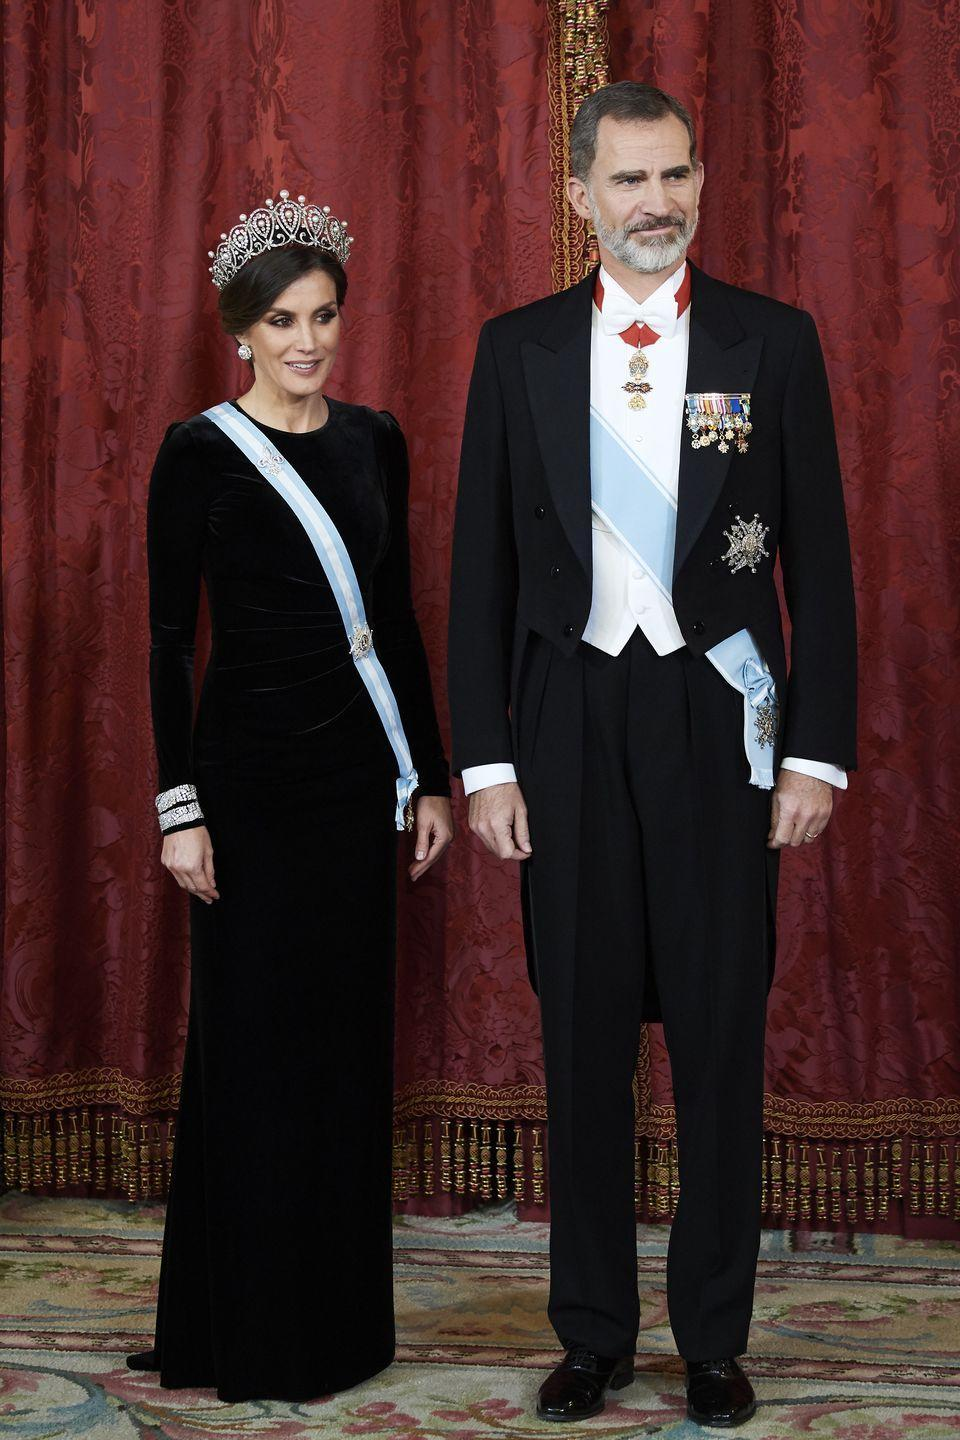 <p>In one of her most formal looks, Letizia wore a striking black, long-sleeved gown, a powder blue sash, and the jaw-dropping Cartier Loop Tiara. The event, held at the Madrid Royal Palace, was a Royal Gala Dinner in honor of Chinese president Xi Jinping and wife Peng Liyuan. </p>